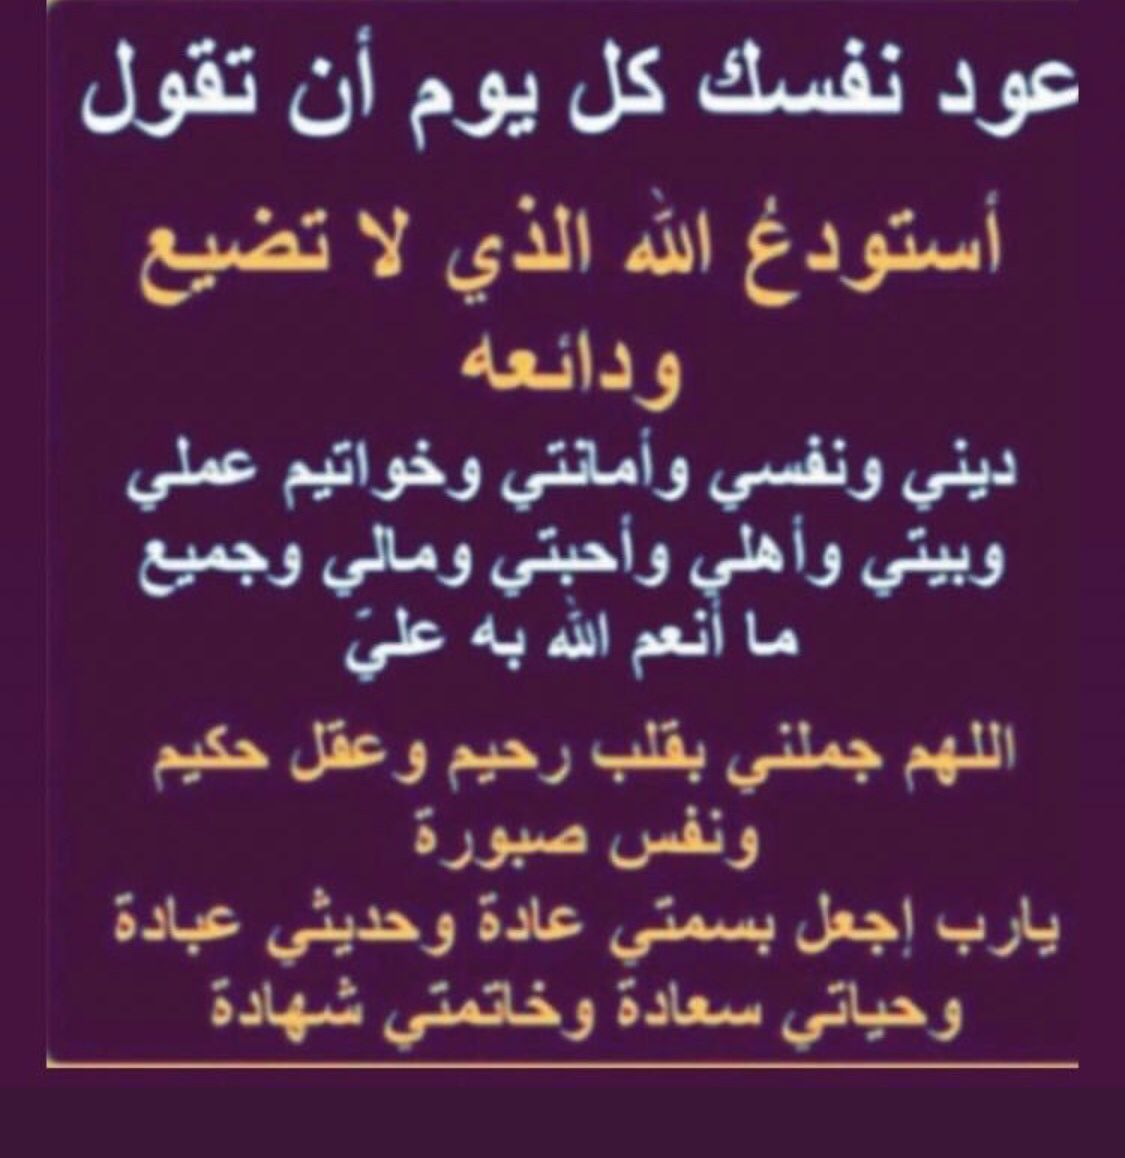 Pin By Nadia Chapui On Astuces Islam Islamic Pictures Beautiful Words